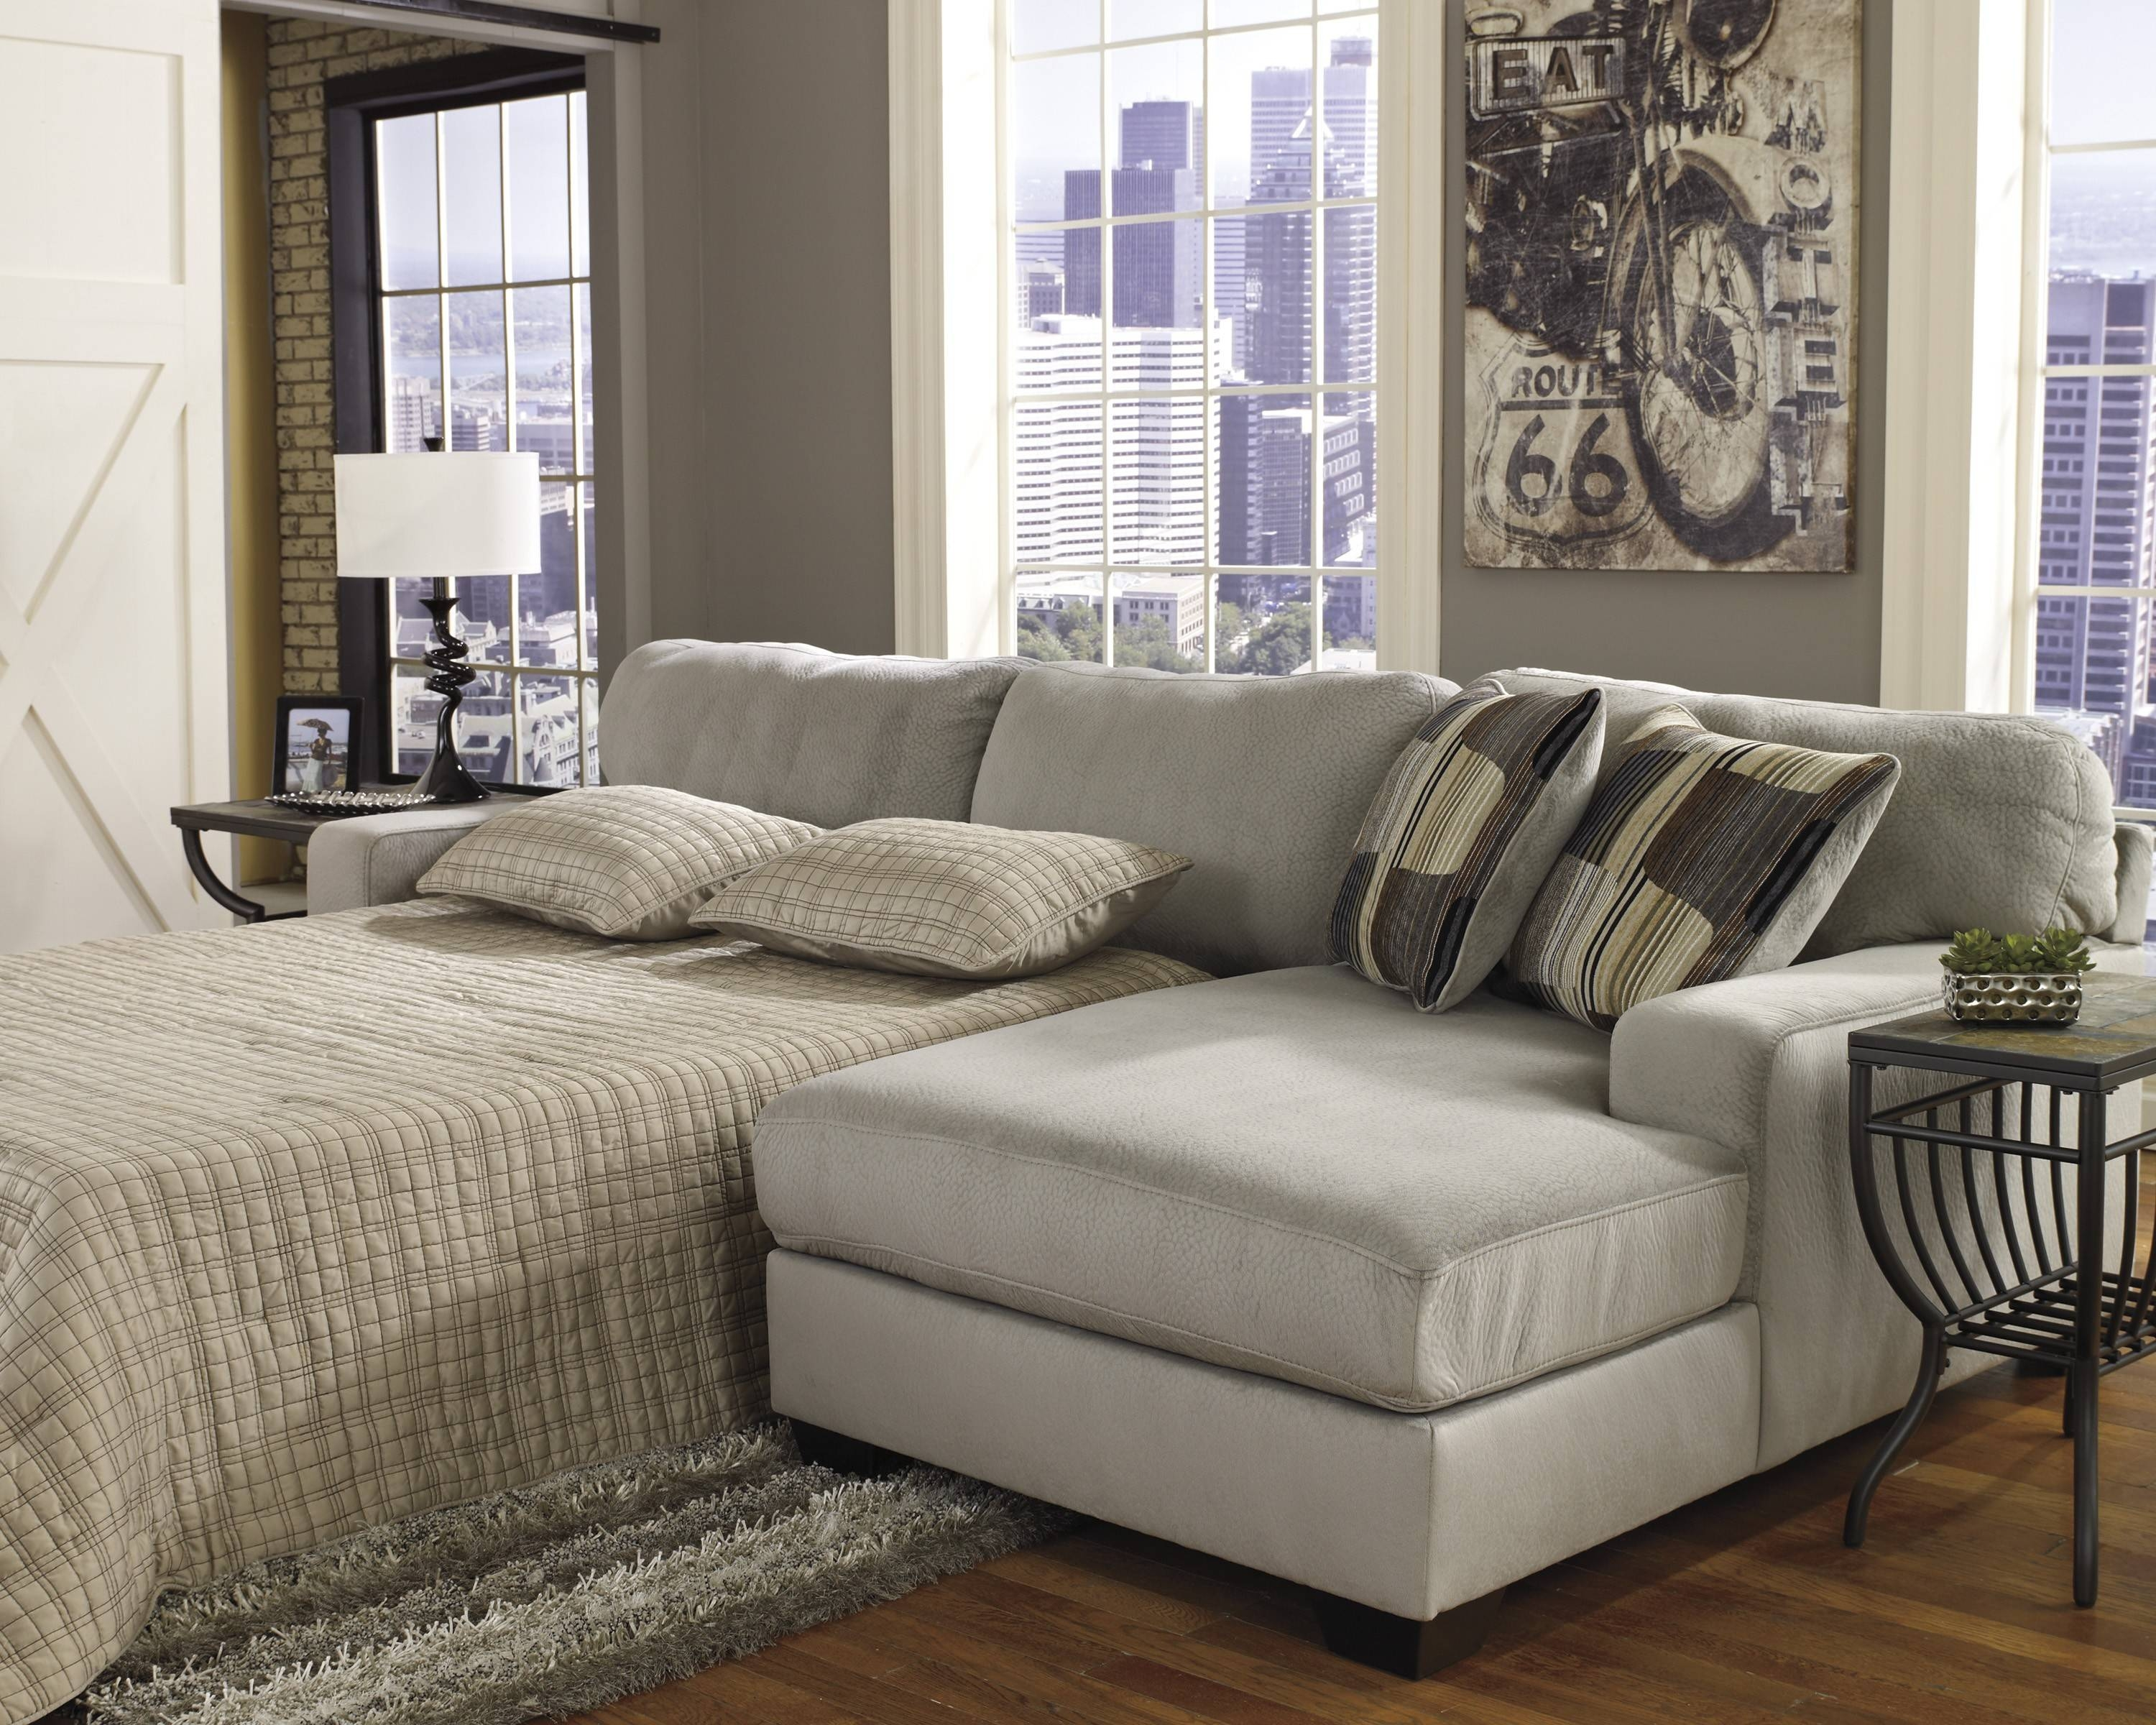 Wonderful Sectional Sofas With Sleeper Bed 52 In 3 Piece Sectional within 3 Piece Sectional Sleeper Sofa (Image 29 of 30)